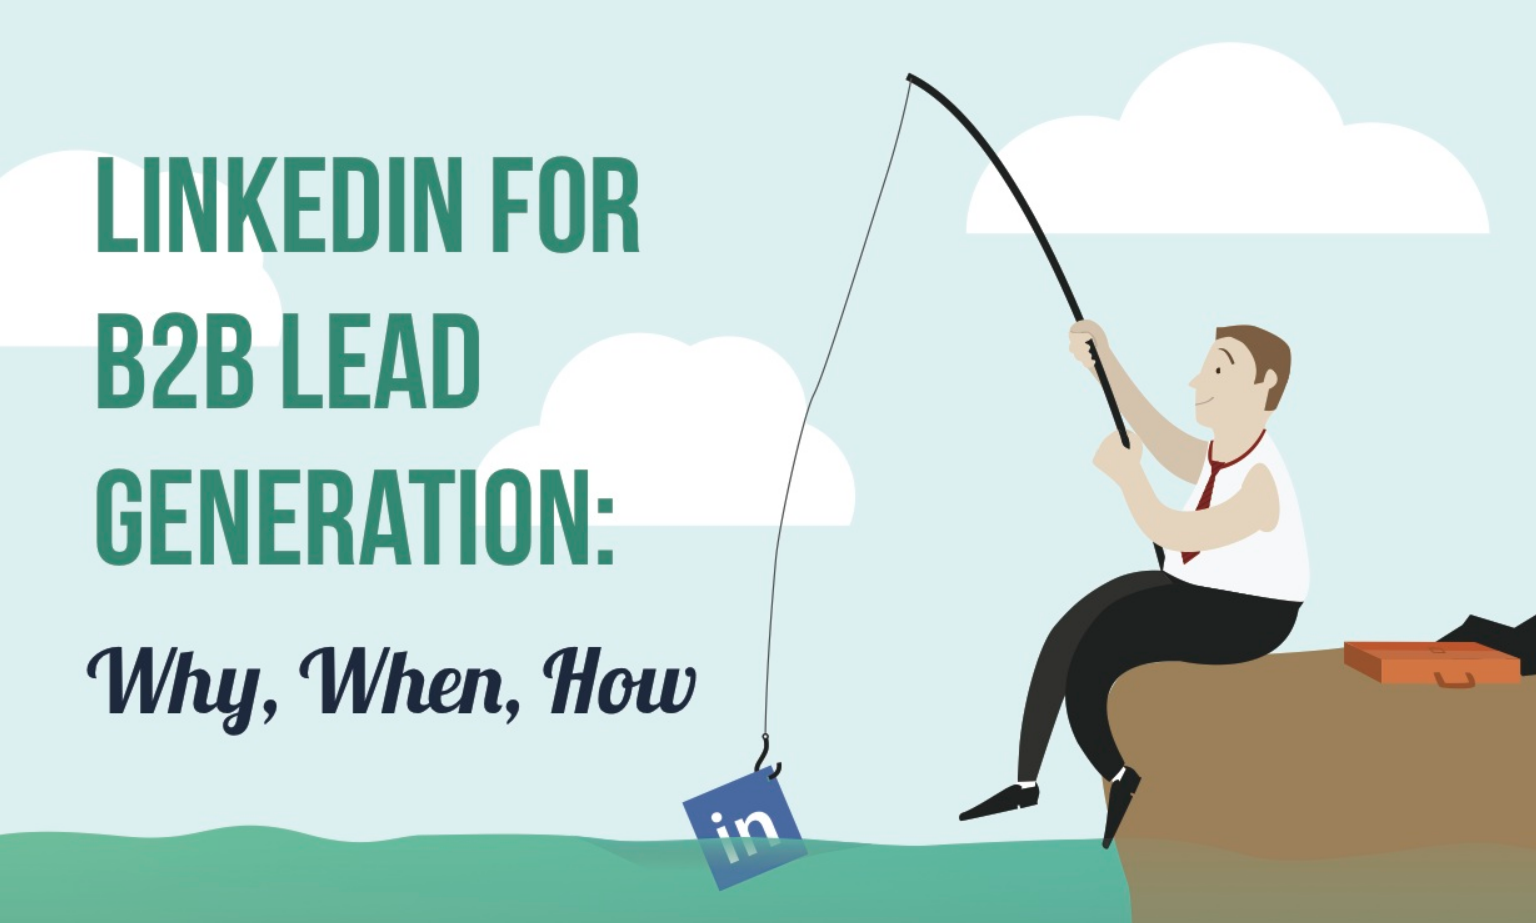 LinkedIn For B2B Lead Generation - infographic